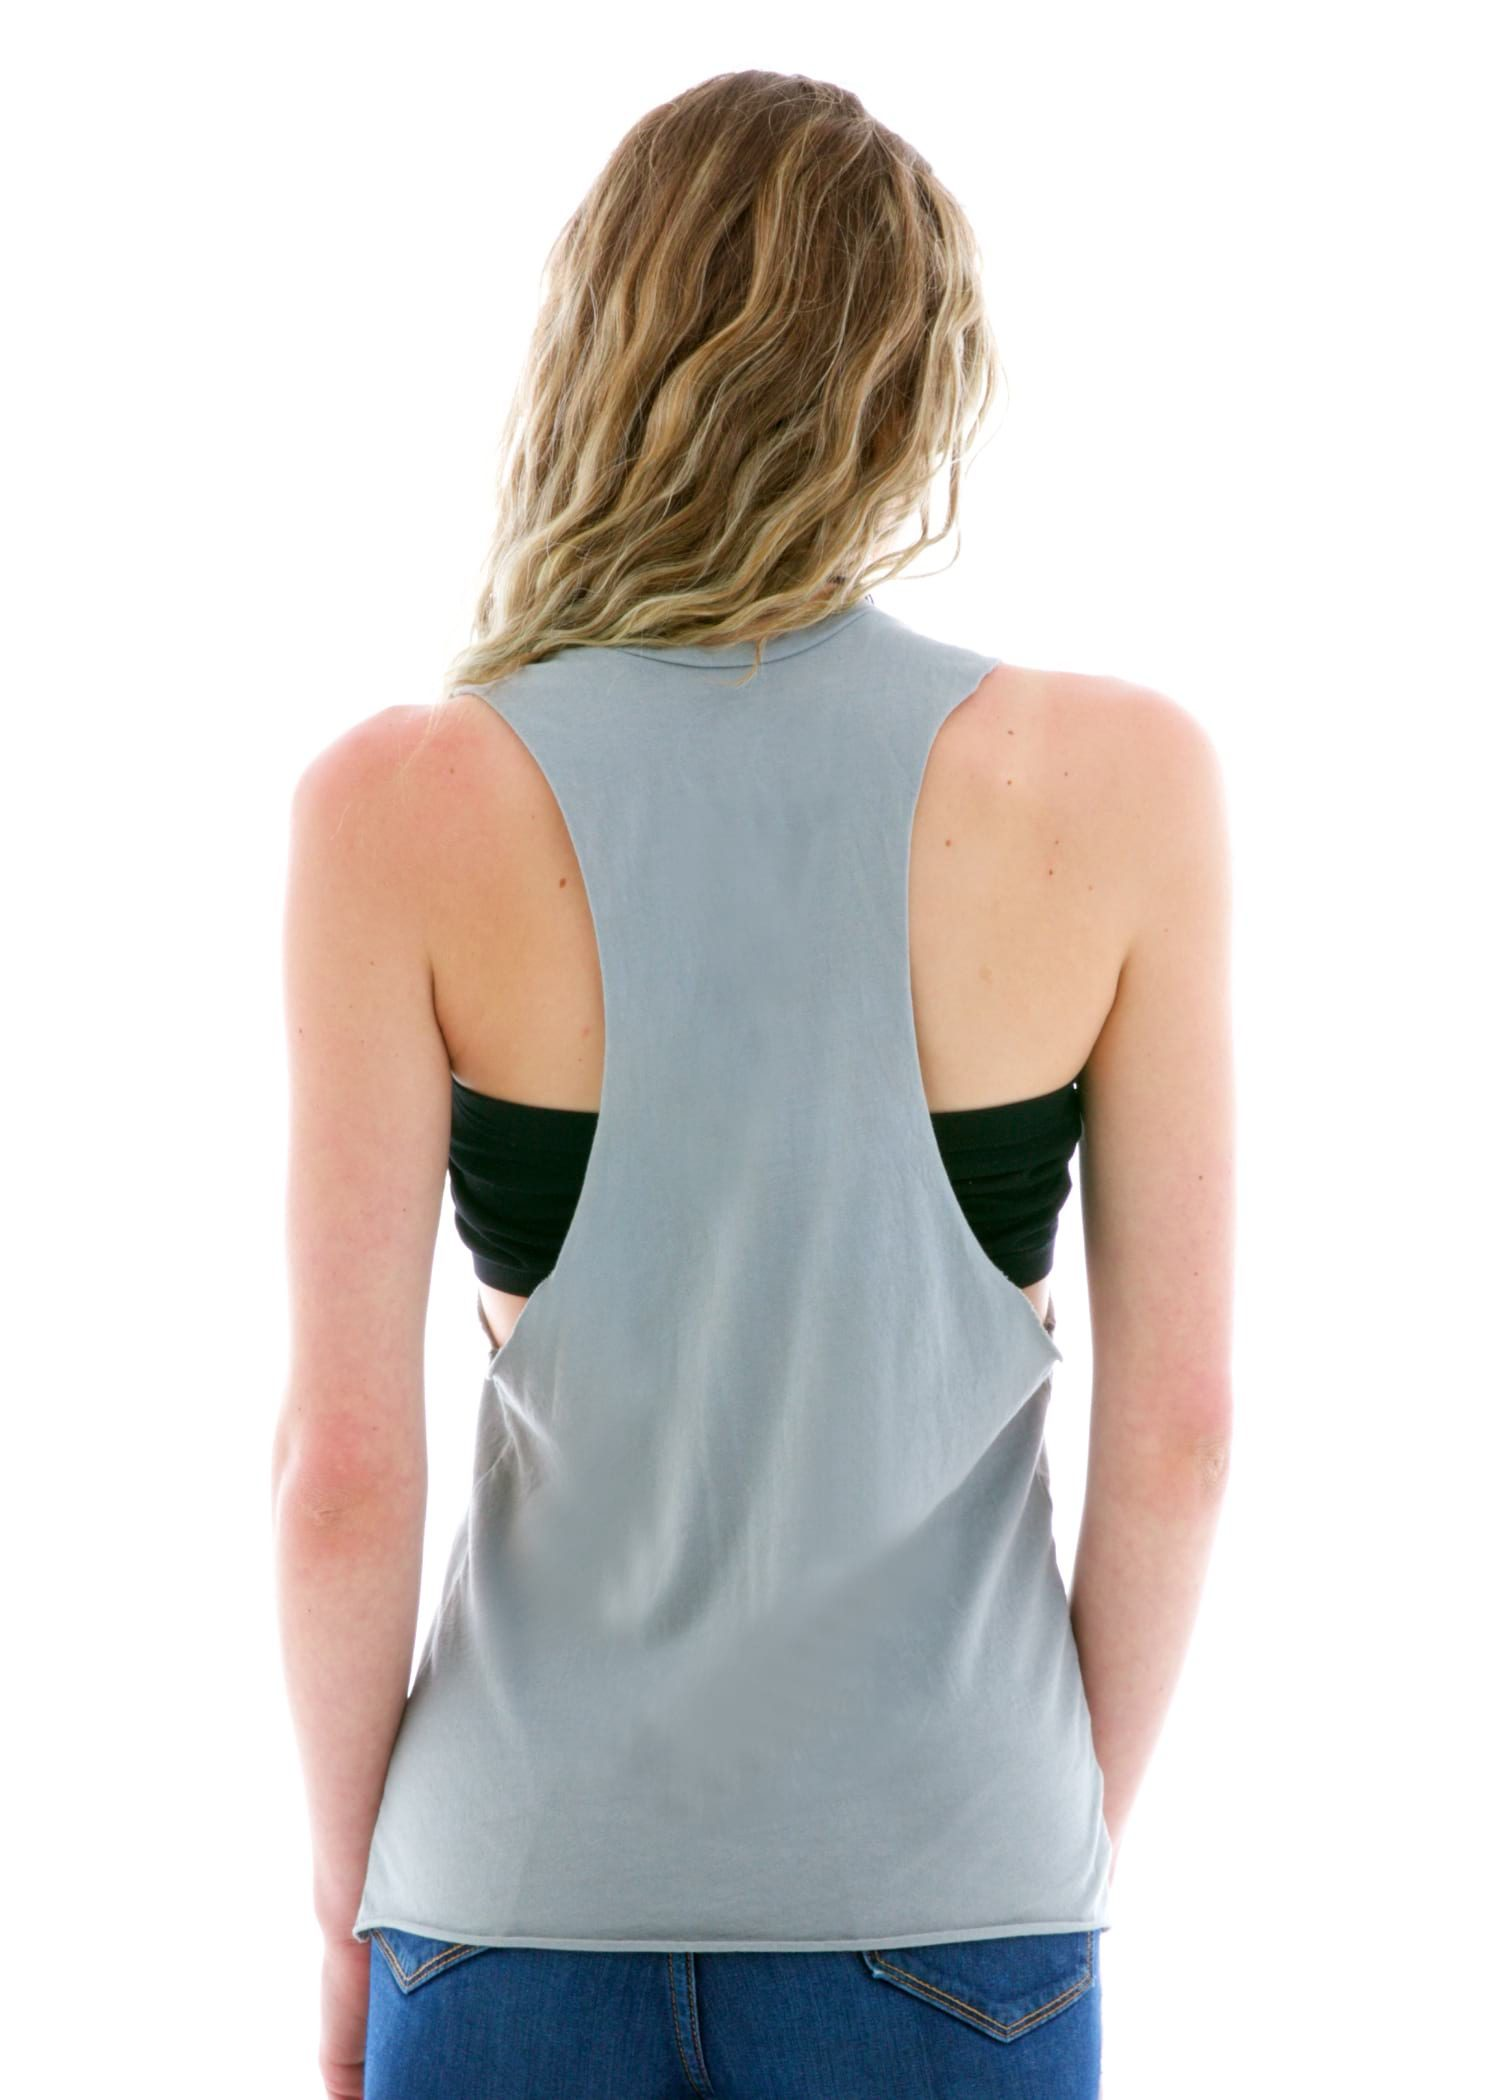 Cutout Tank Top Back View